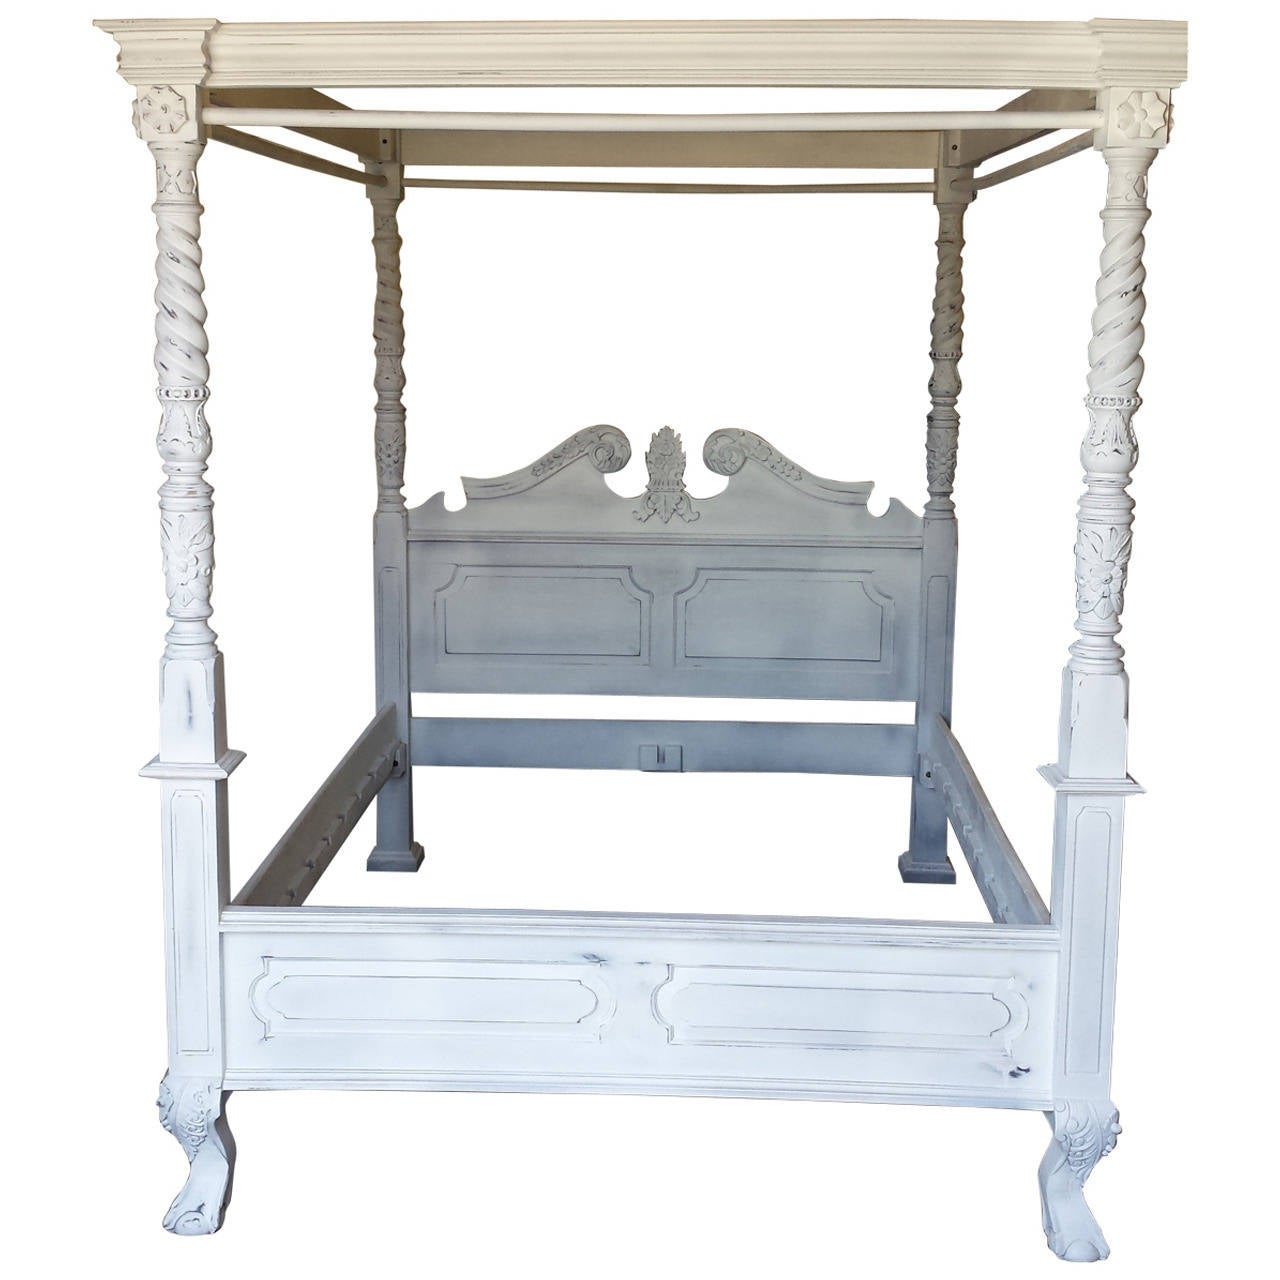 Onsale French Louis Xv Style White Canopy Bed Frame Queen